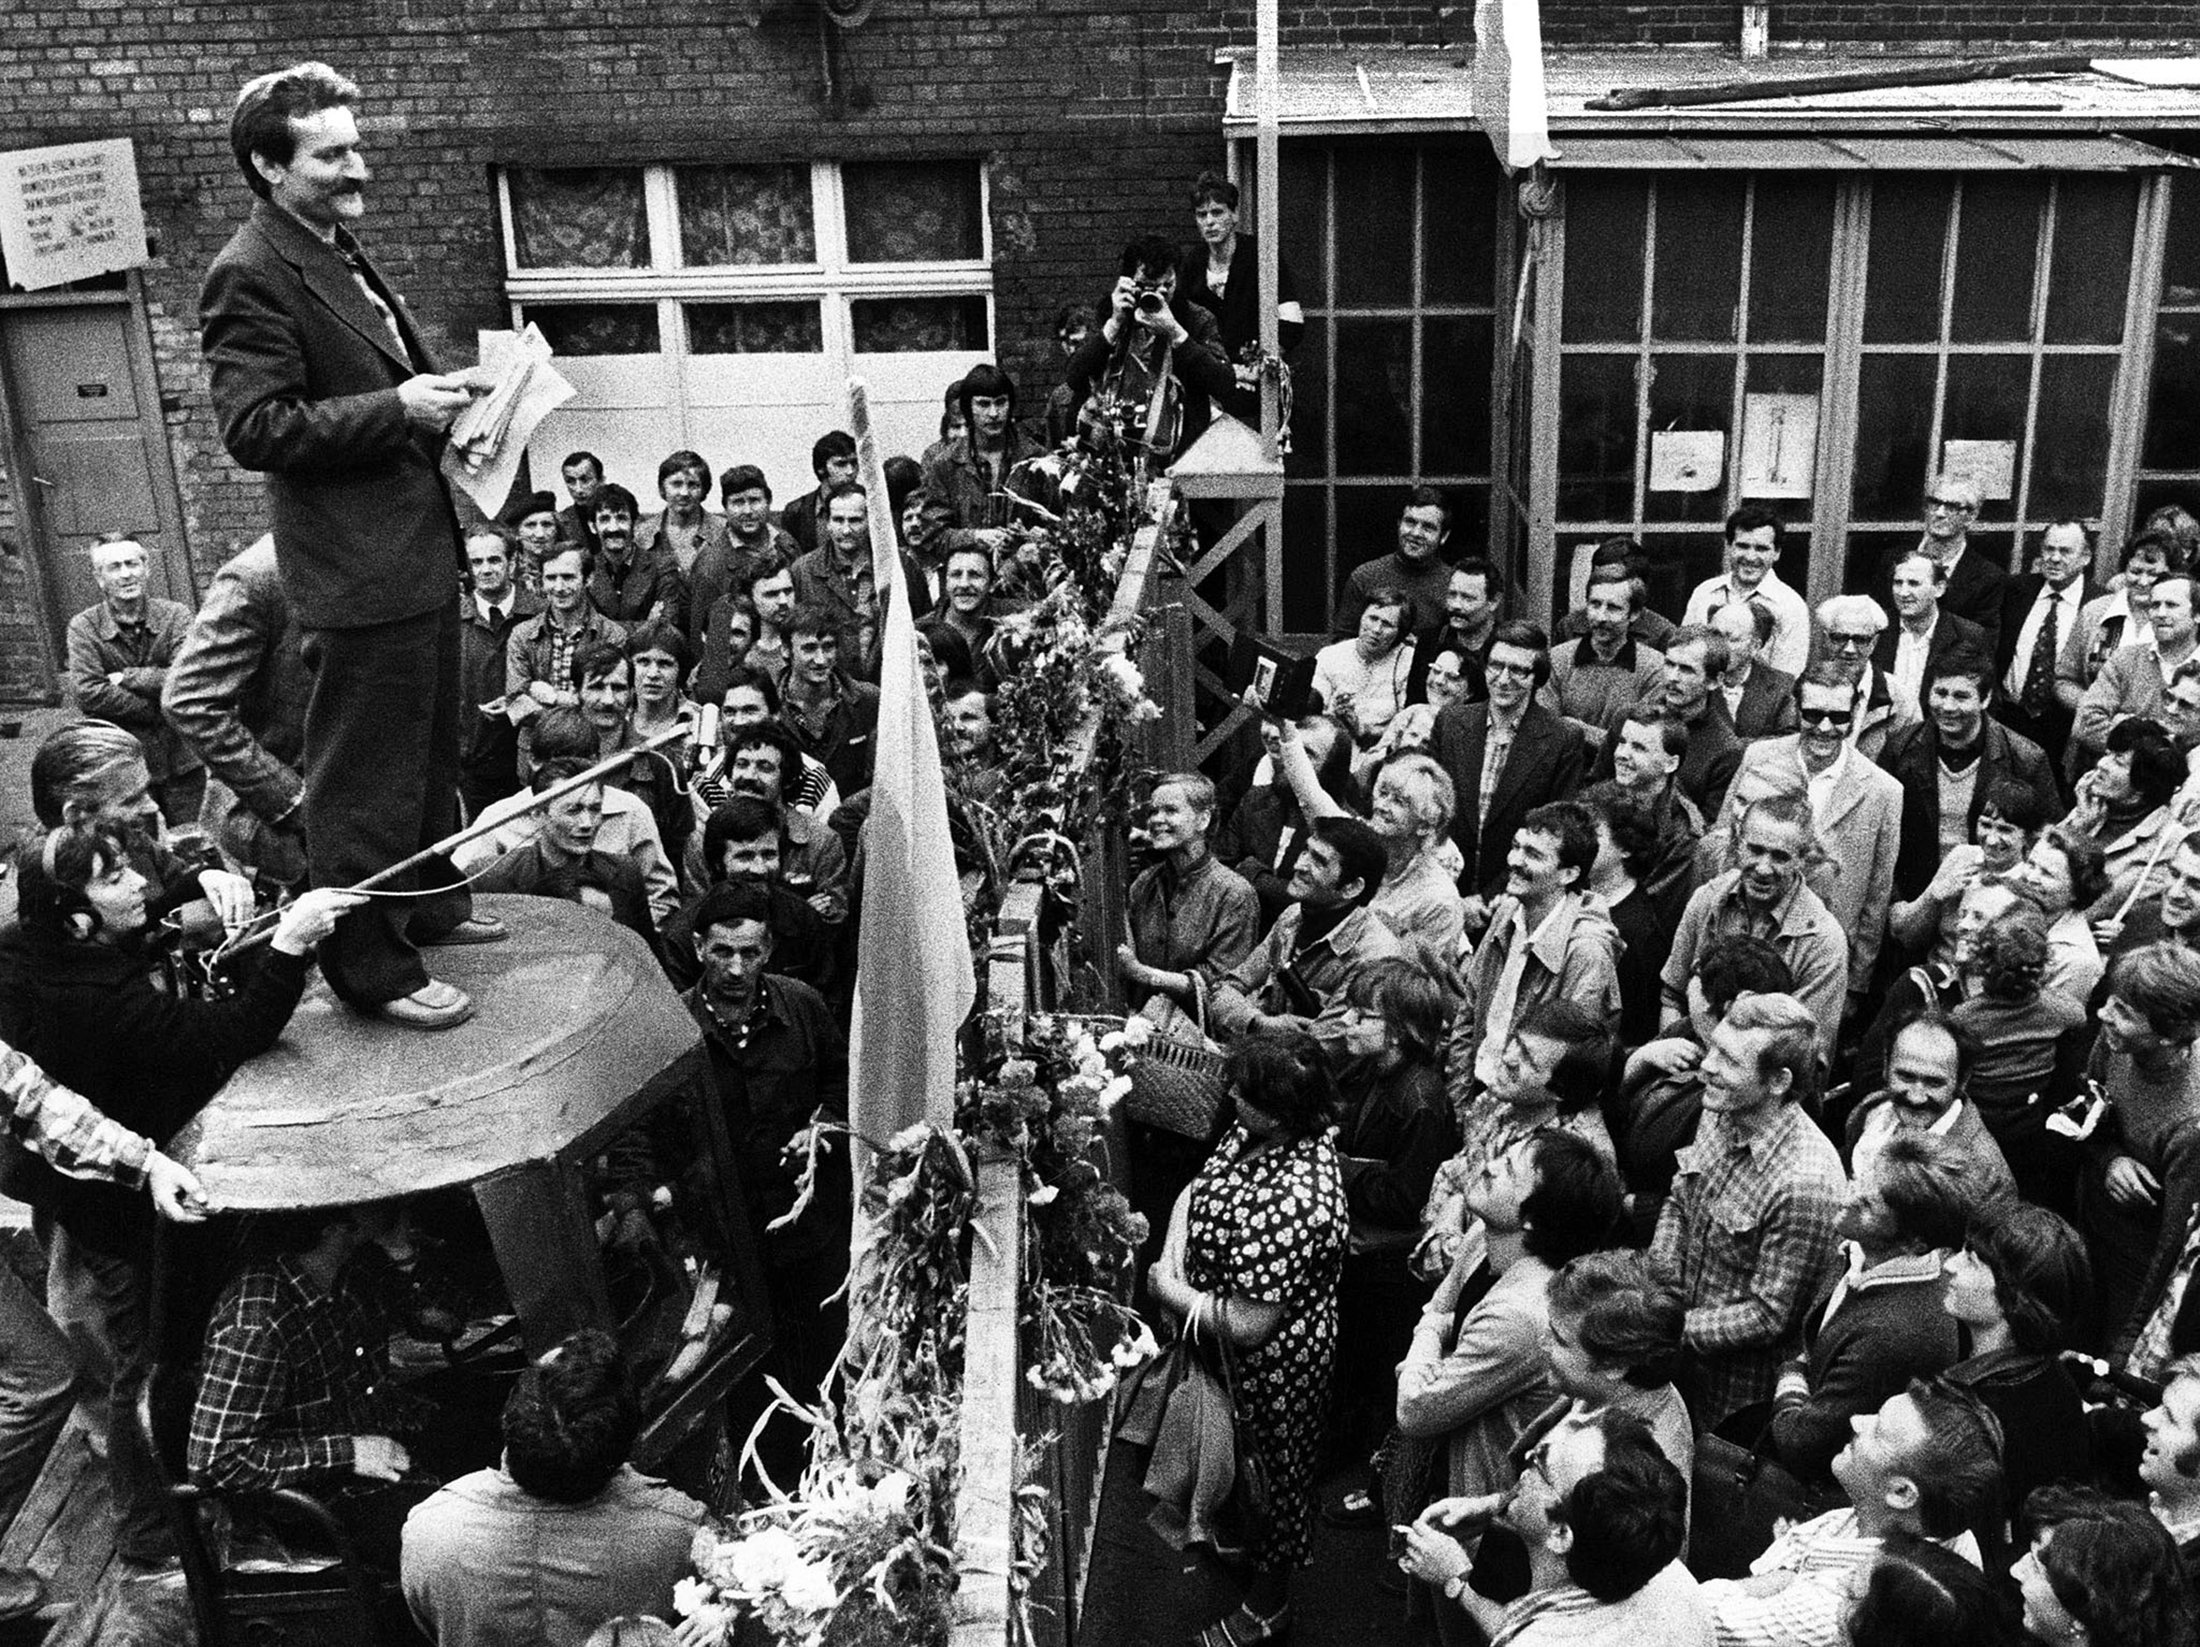 Former Polish President and Solidarity founding leader Lech Walesa (L) speaks to workers during a strike at the Gdansk shipyard, Poland, Aug. 8, 1980. (Reuters Photo)